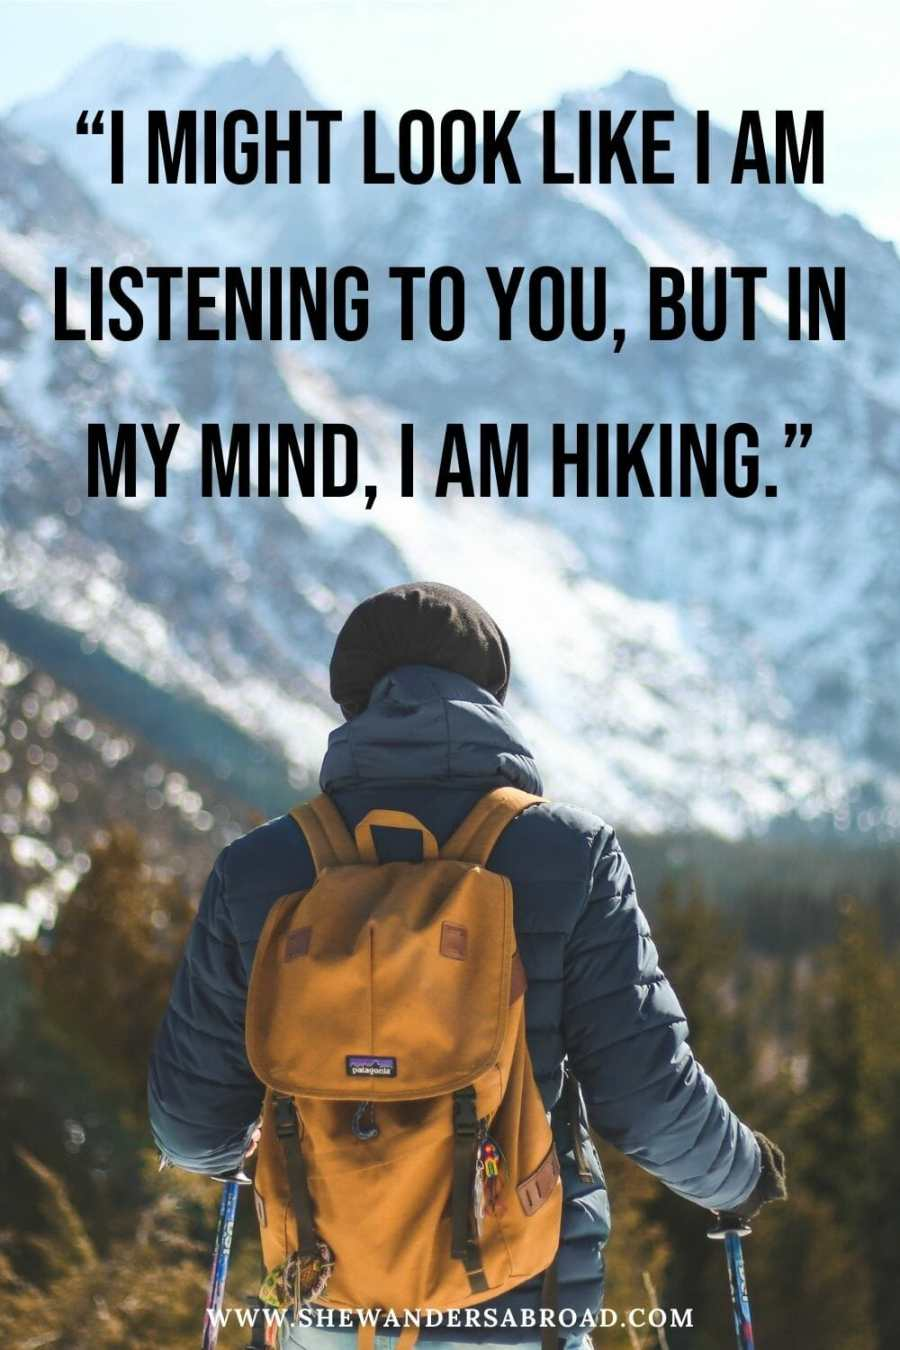 Funny hiking captions for Instagram